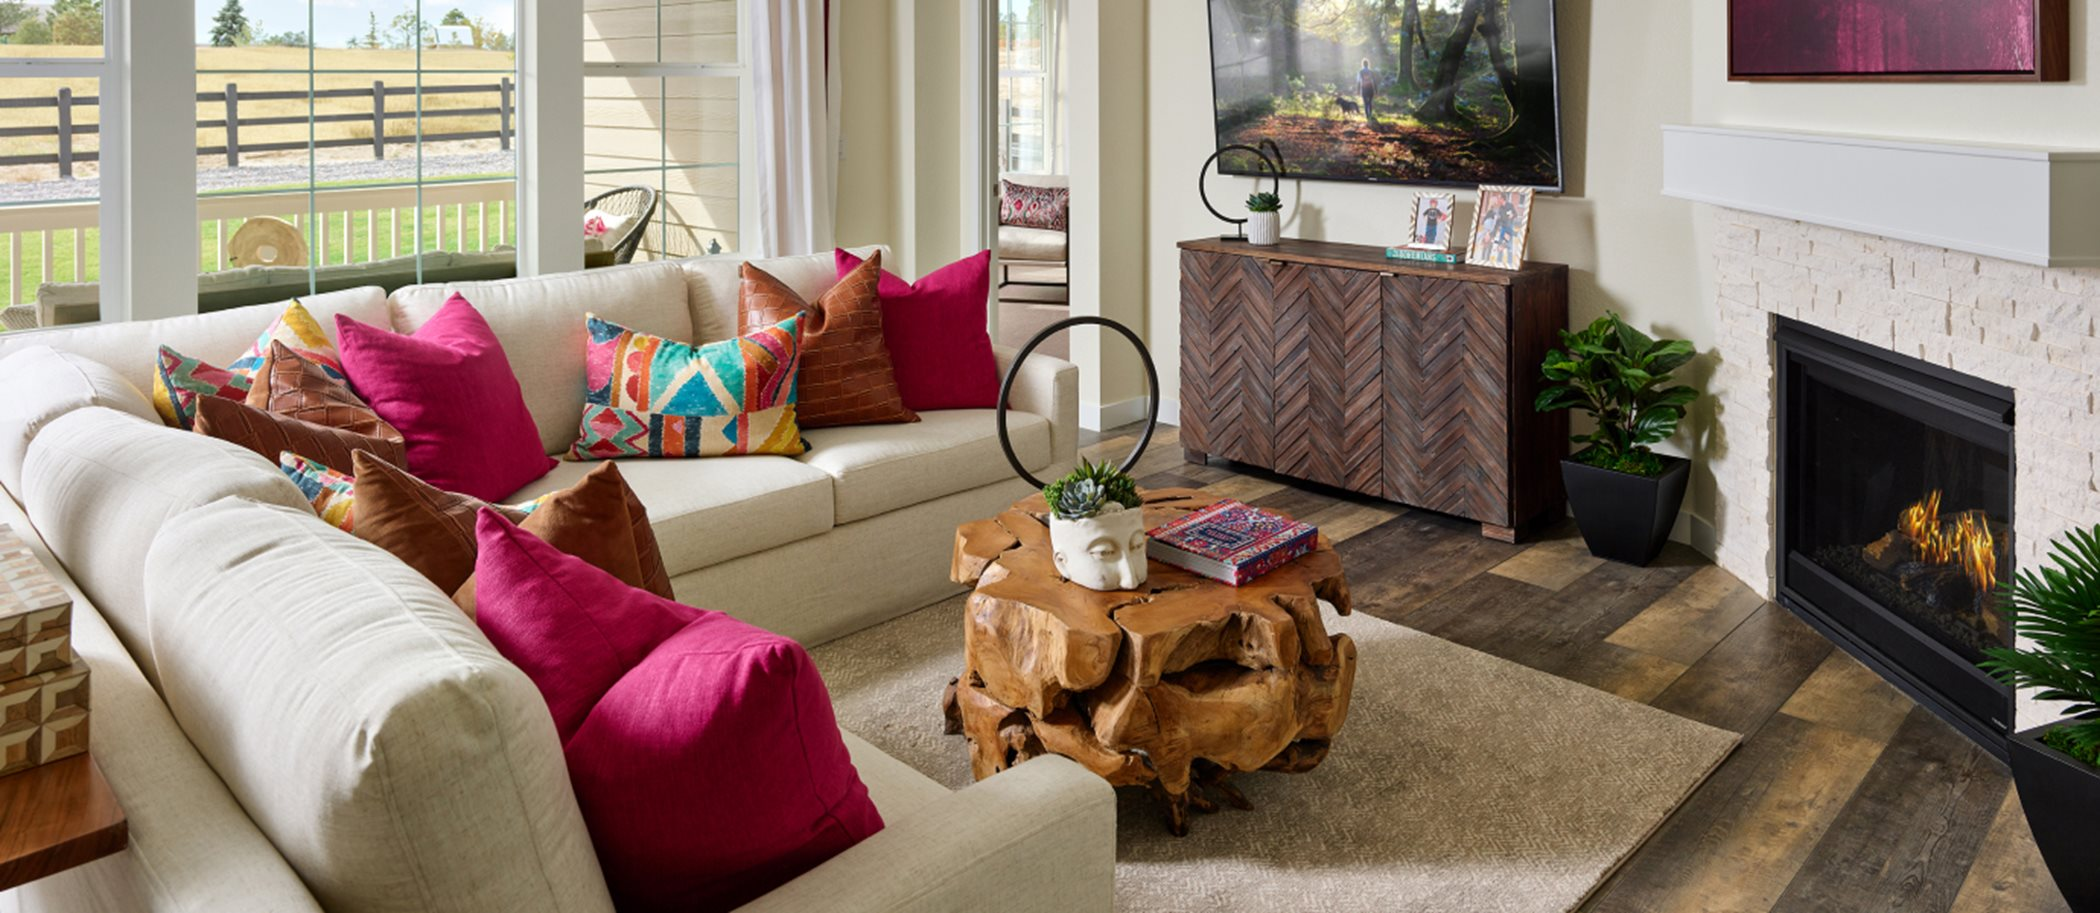 Inspiration The Grand Collection Somerton Living Room